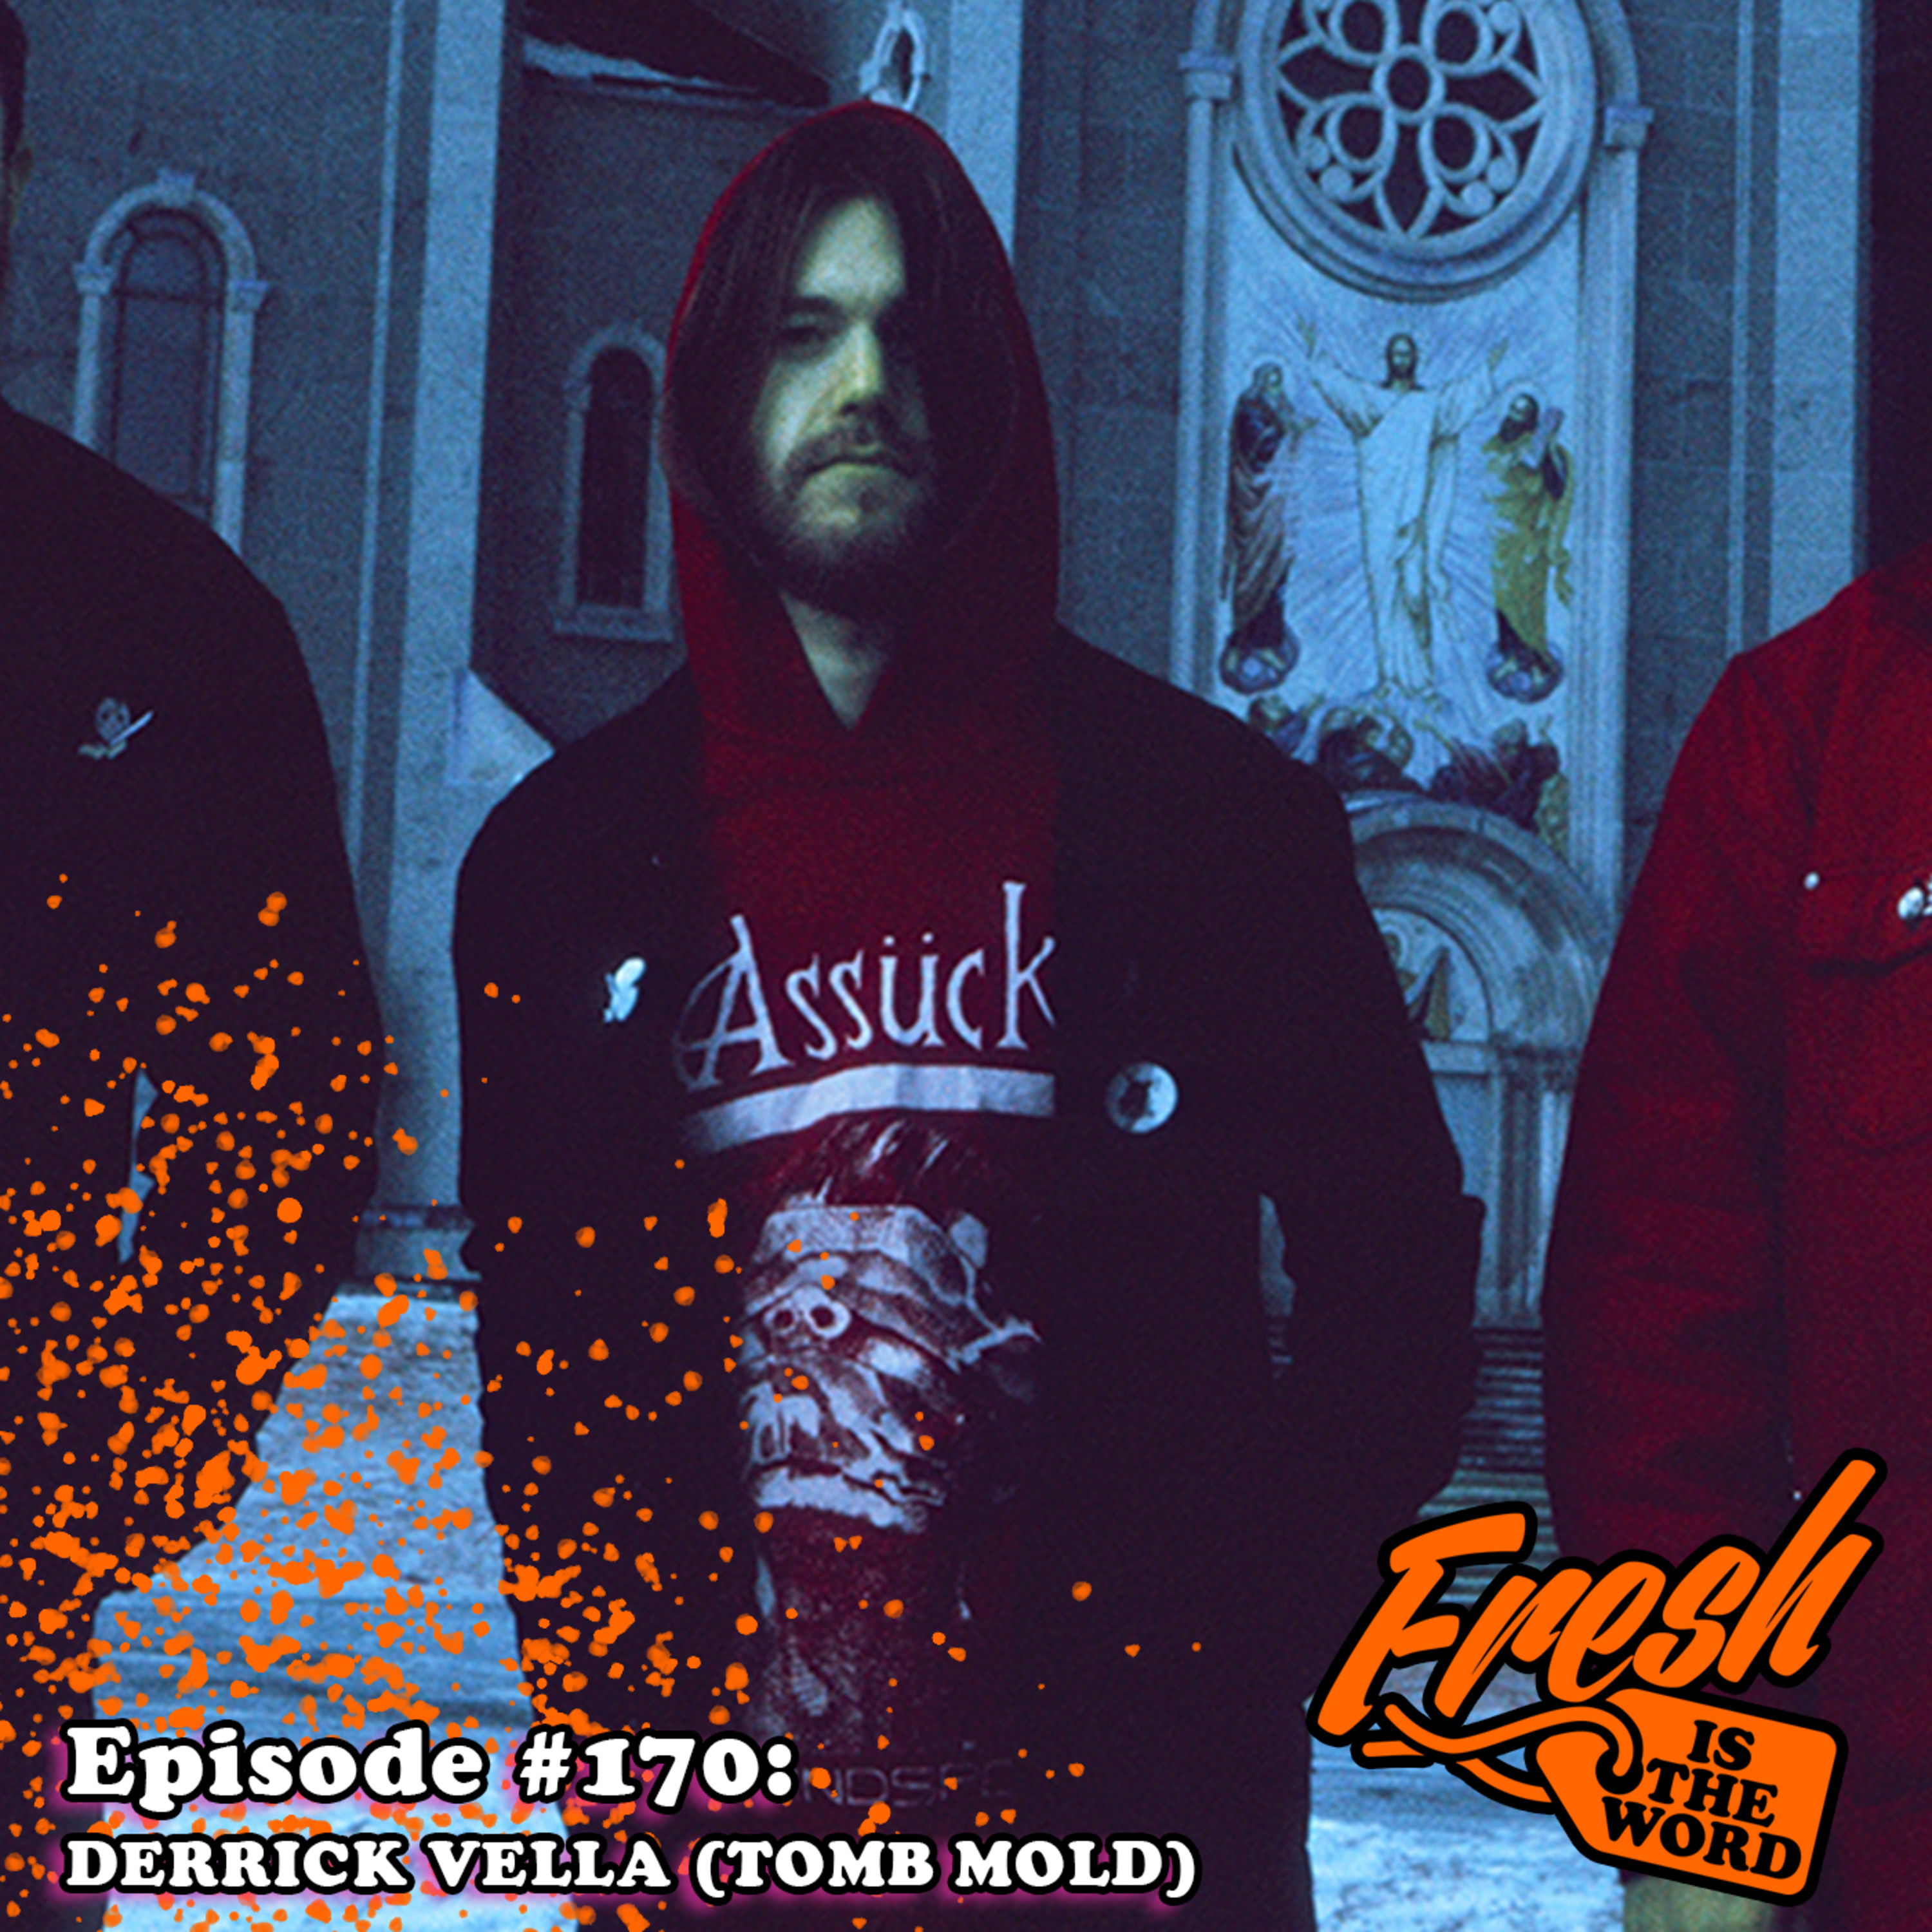 """Episode #170: Derrick Vella - Guitarist of Toronto Death Metal Band 'Tomb Mold', New Album """"Planetary Clairvoyance"""" Out Now Via 20 Buck Spin (Recorded at The Sanctuary in Detroit)"""